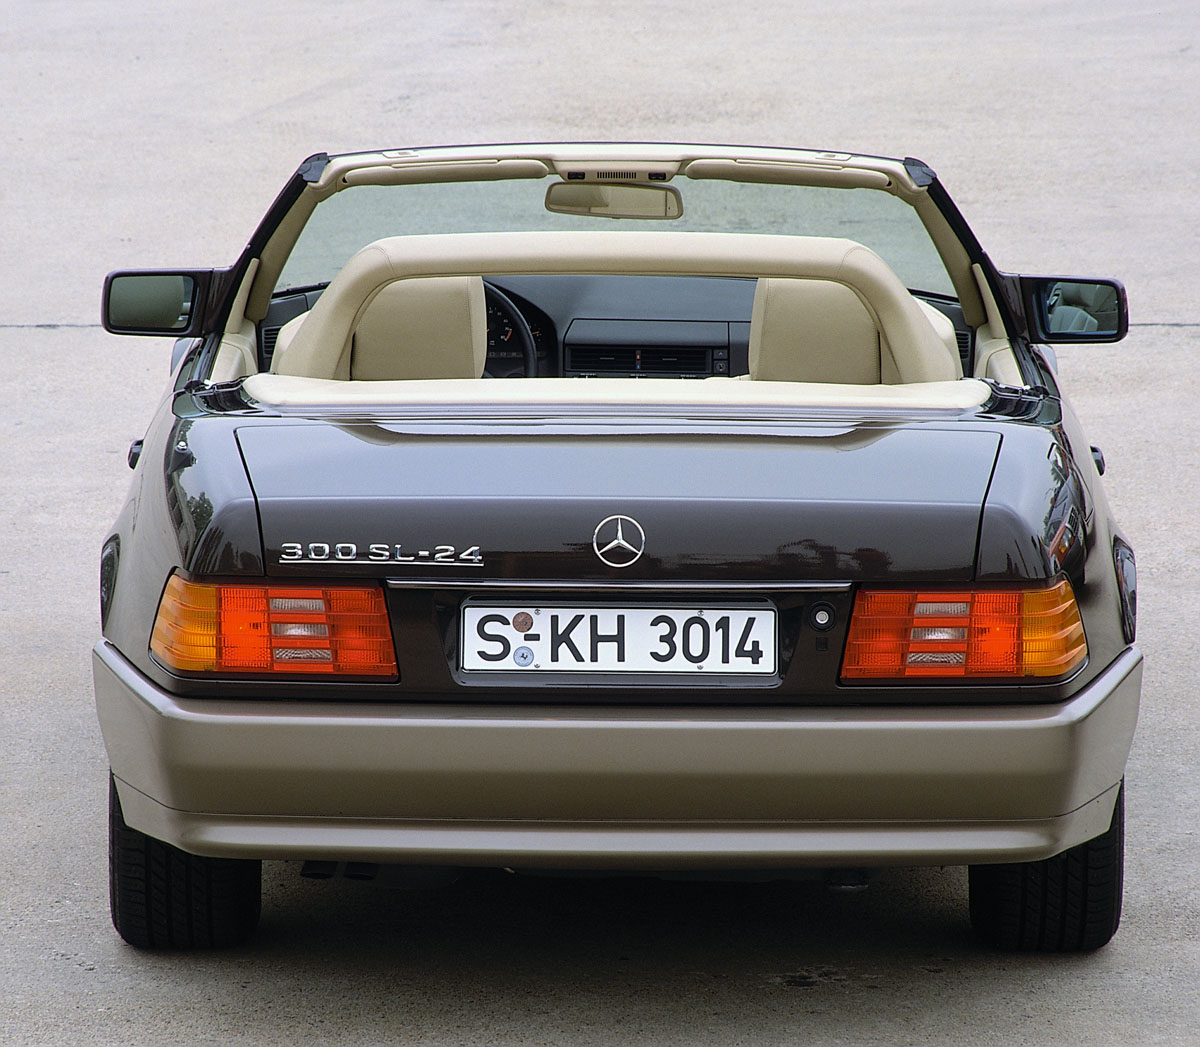 25 years ago mercedes launches the r129 sl ran when parked. Black Bedroom Furniture Sets. Home Design Ideas